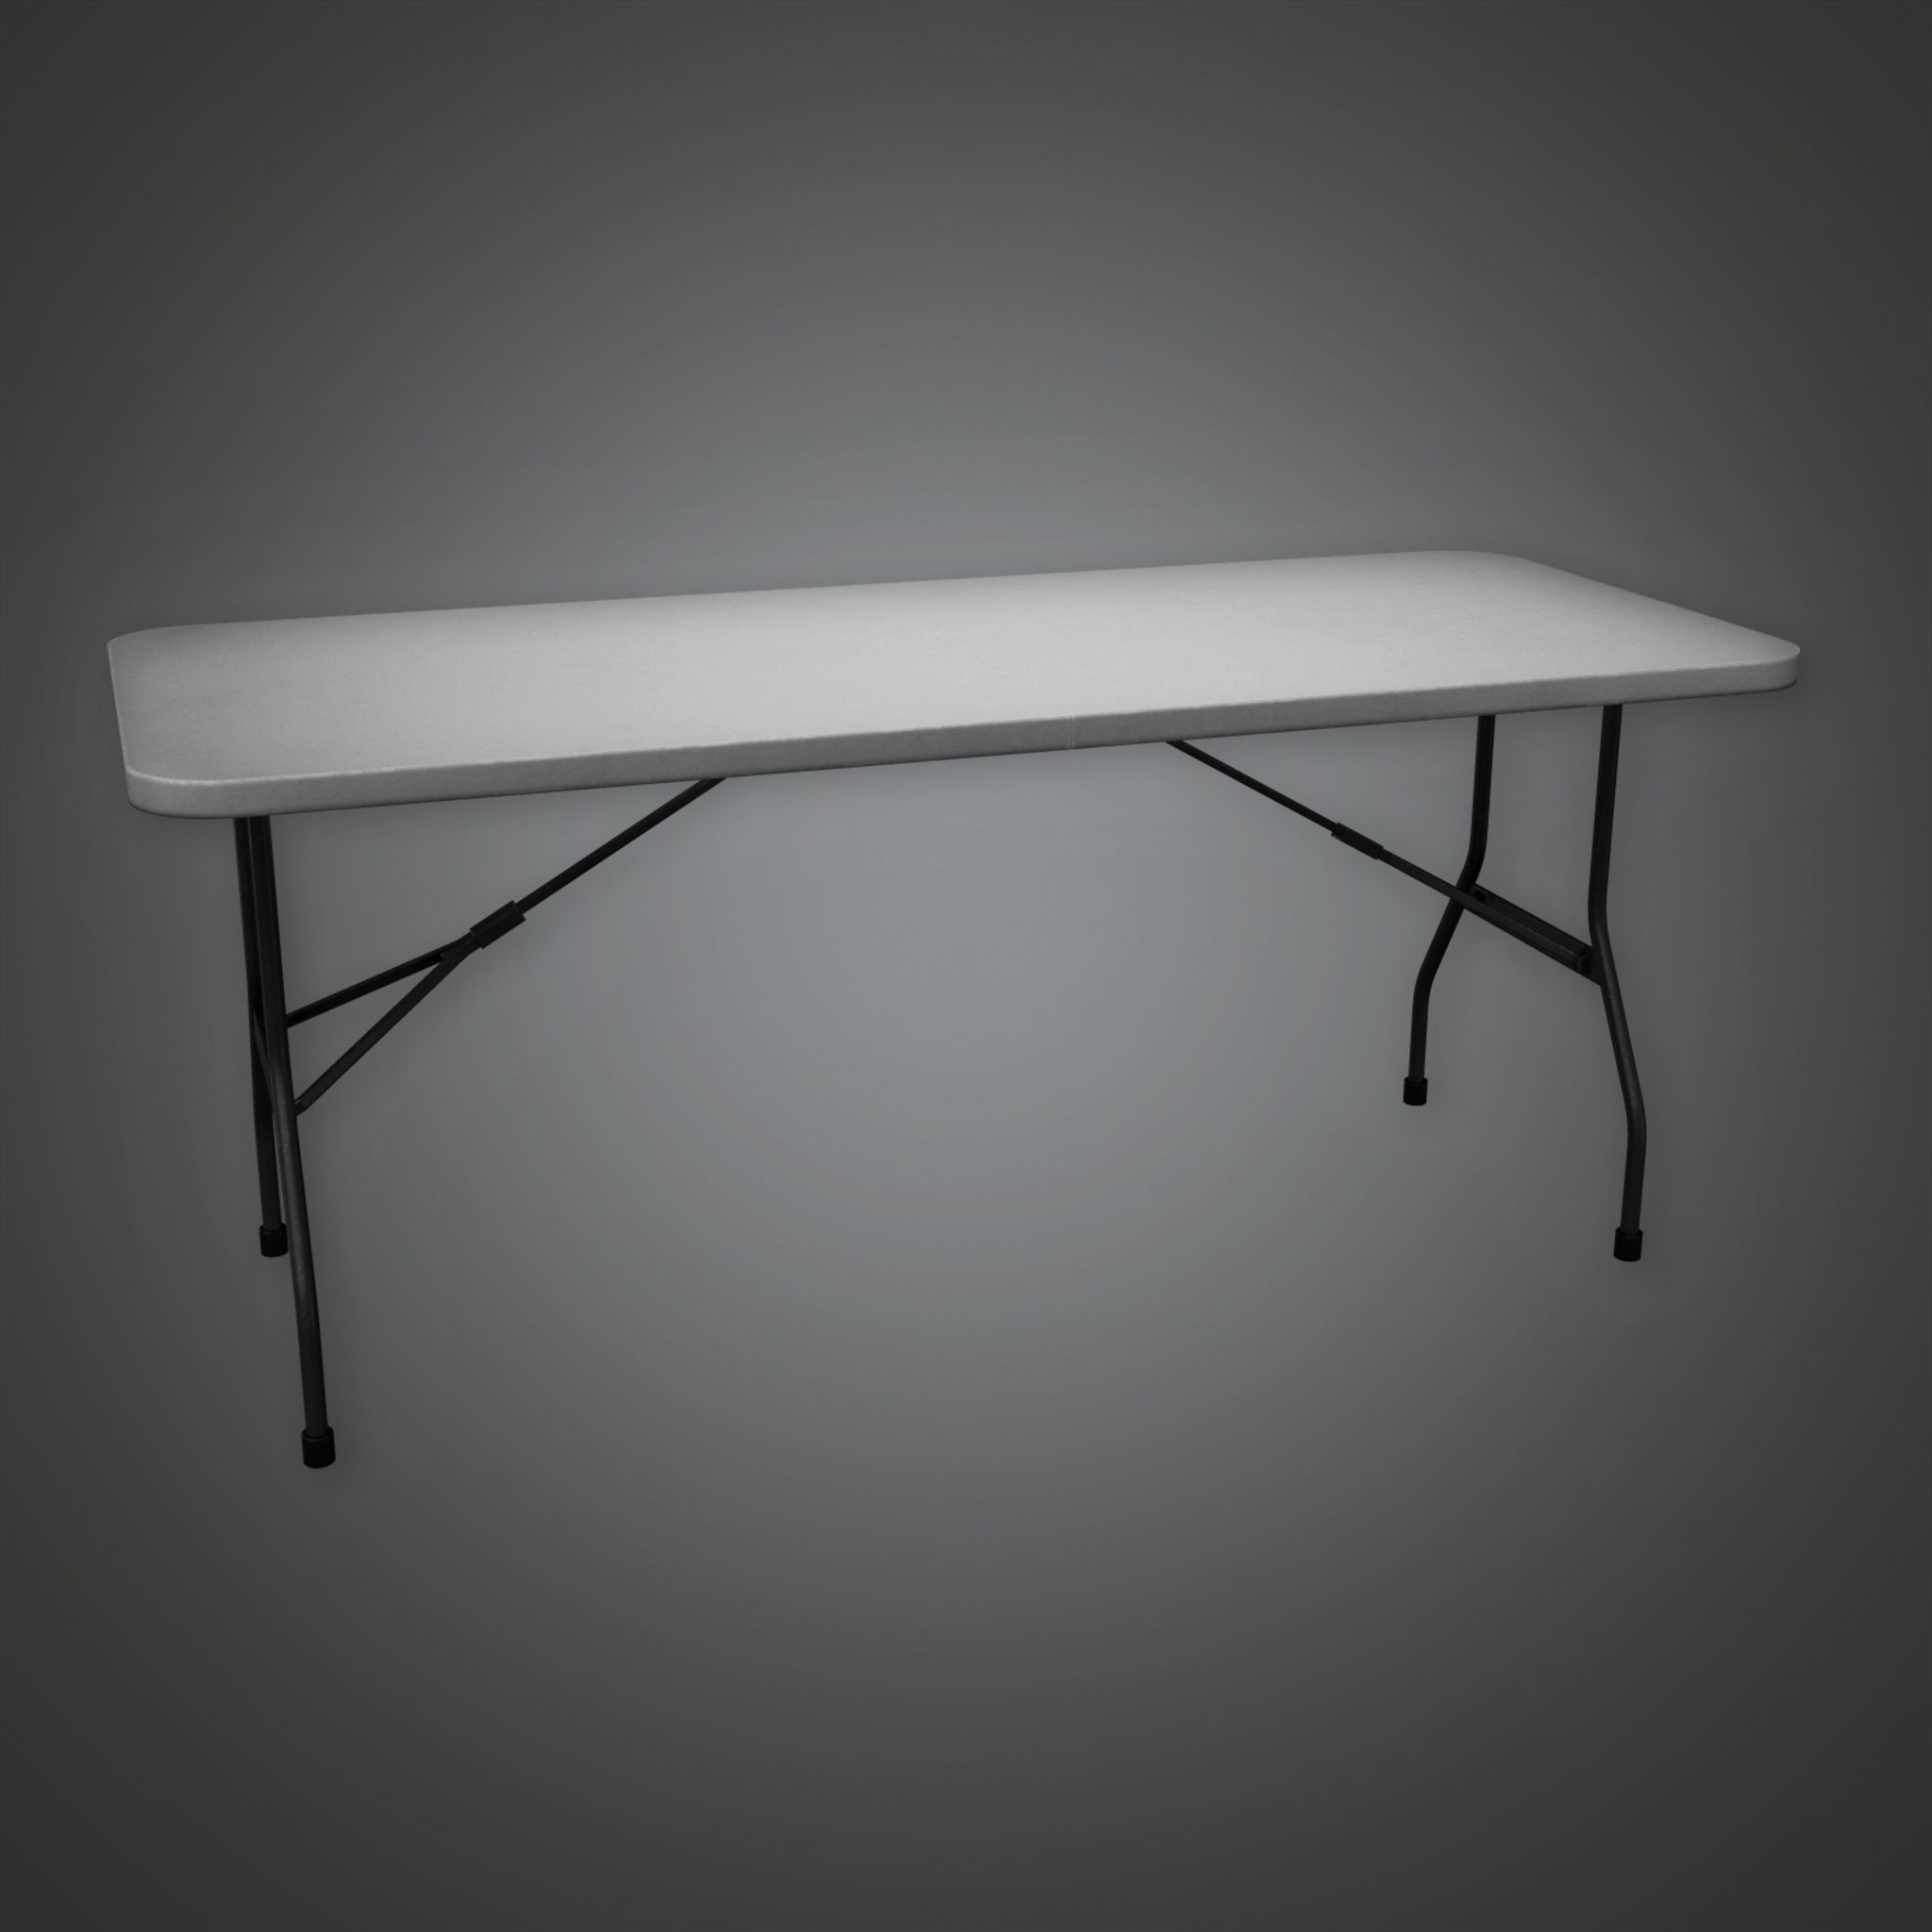 HLW - Folding Table 01 - PBR Game Ready